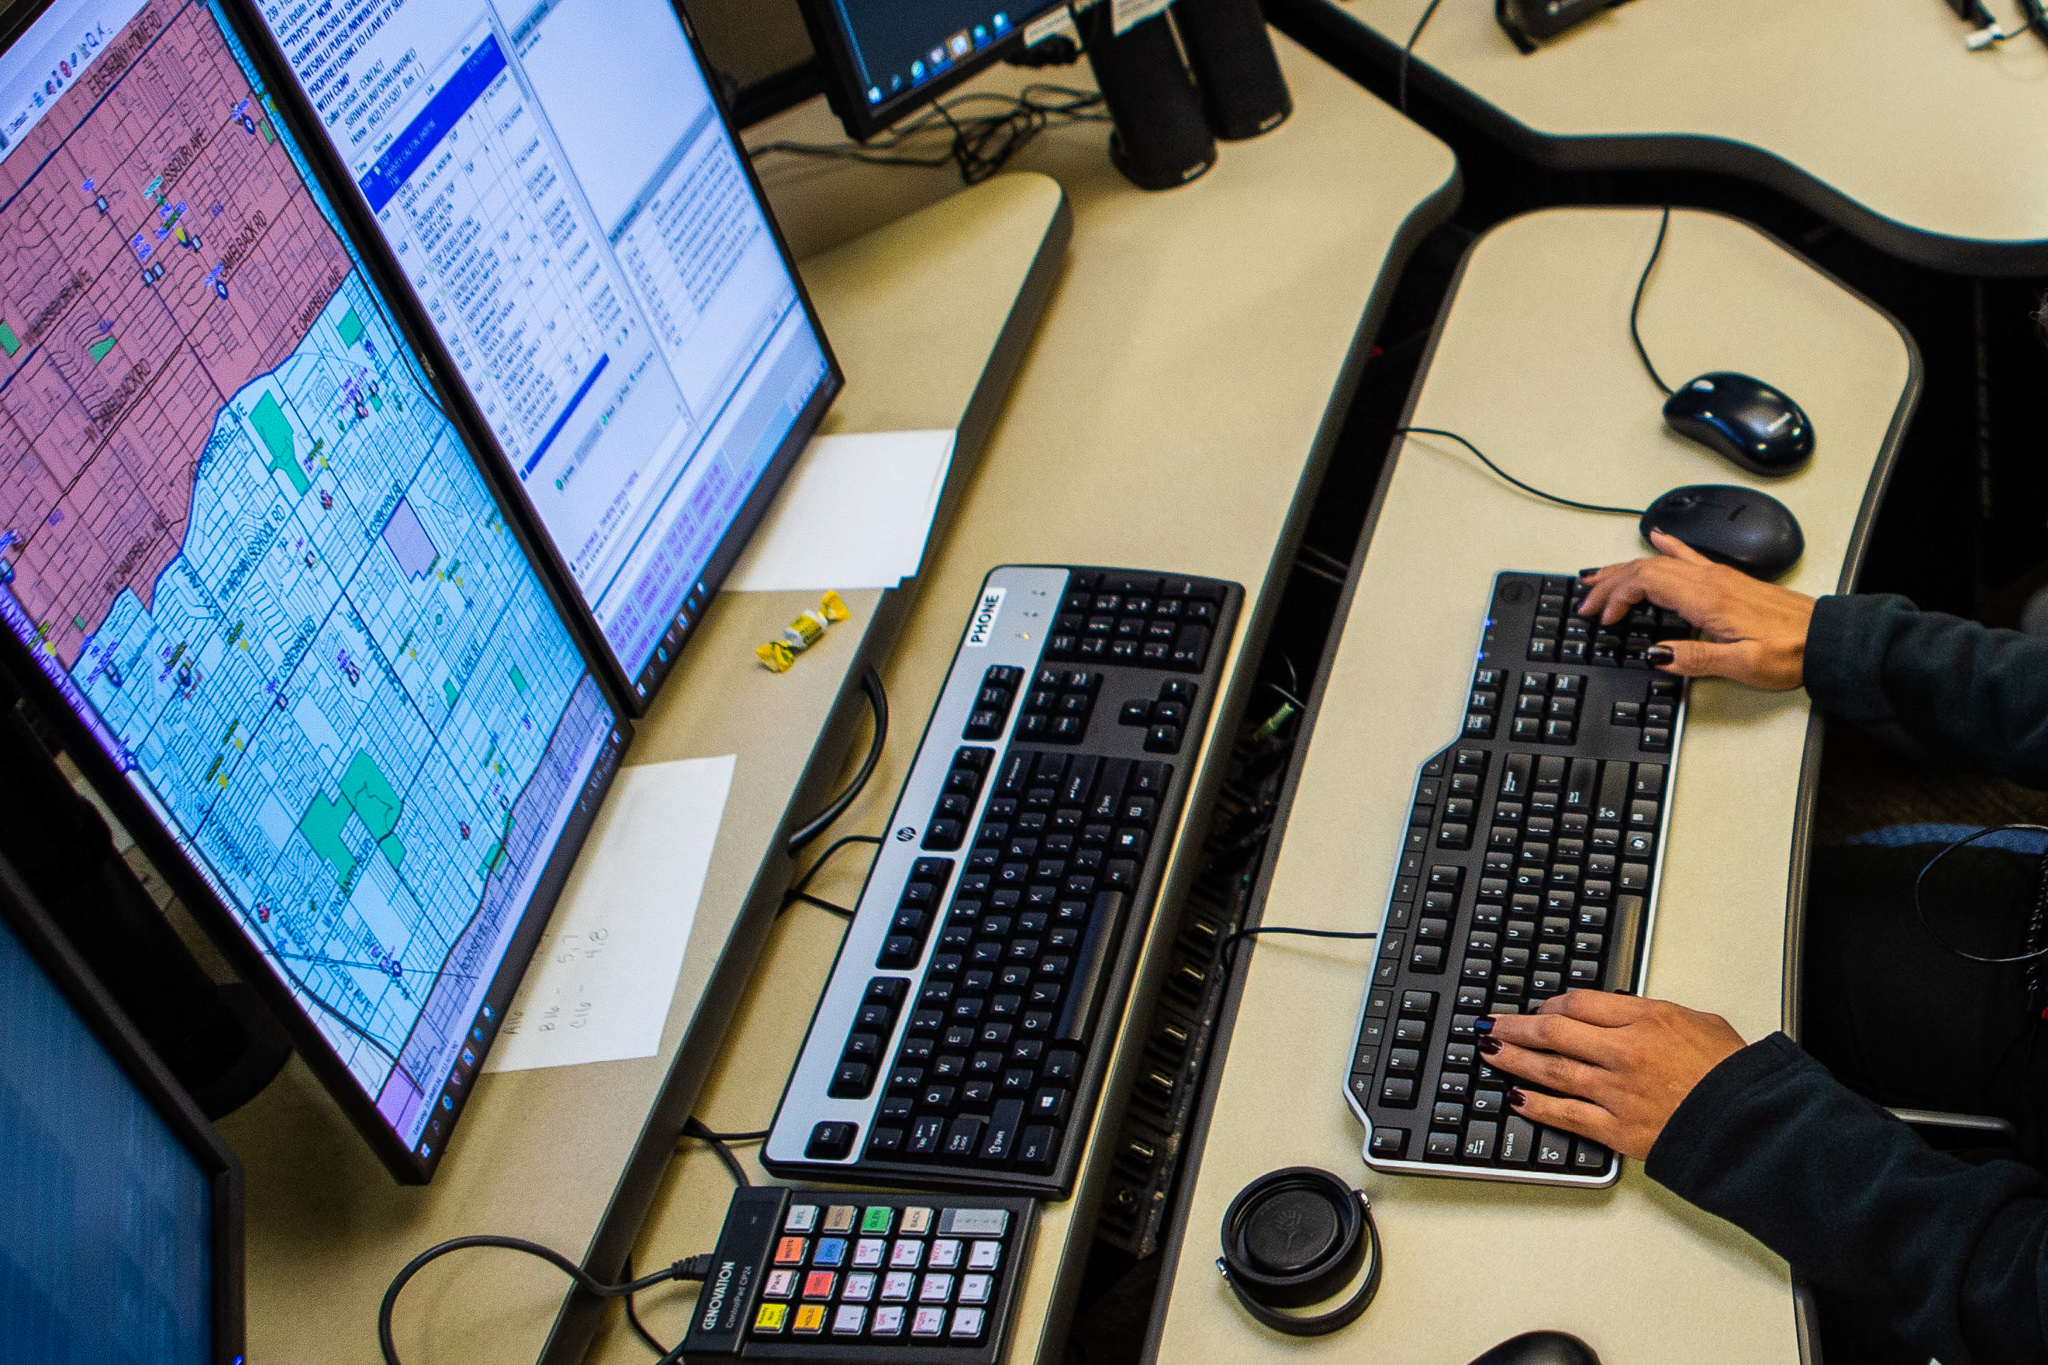 Maria Abeyta dispatches up to six calls at a time at the Phoenix Police dispatch center, Nov. 22 2019. The police dispatch center answers 911 calls from all seven precincts in Phoenix. (Photo by Audrey Jensen)